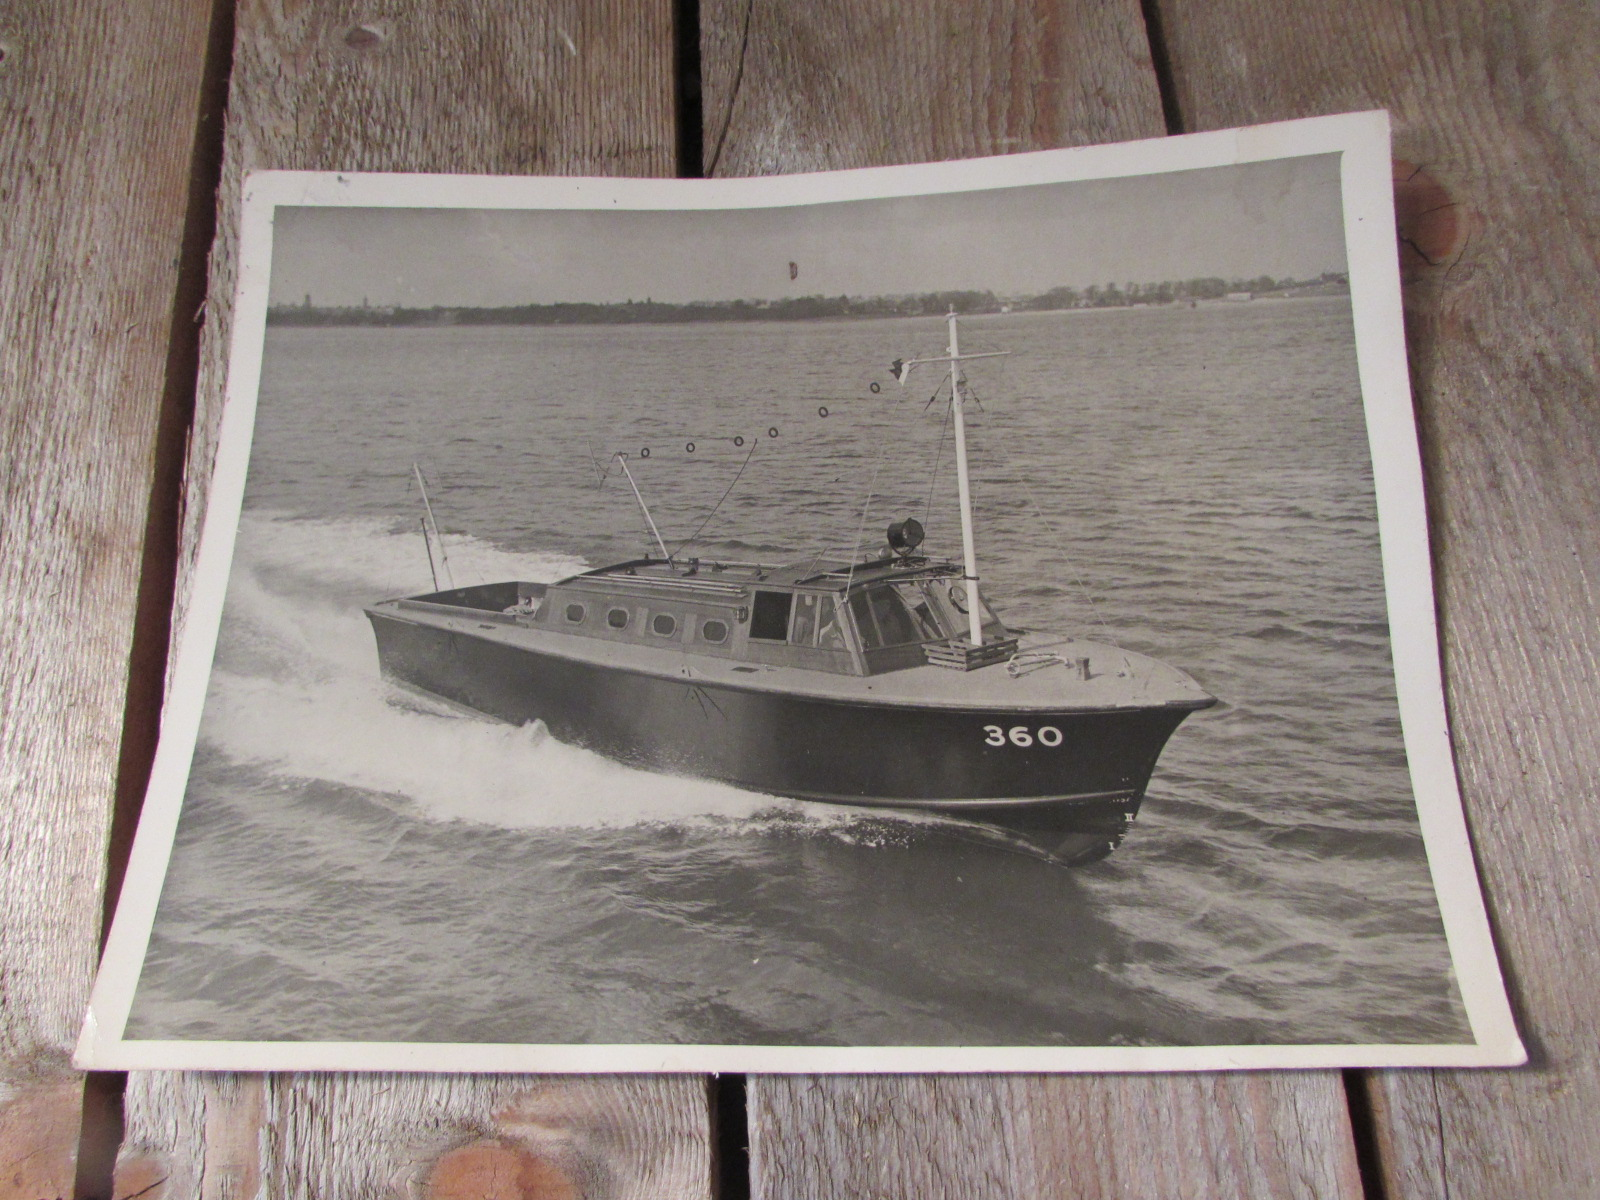 1941 Photo of the R.A.F. launch boat No. 360